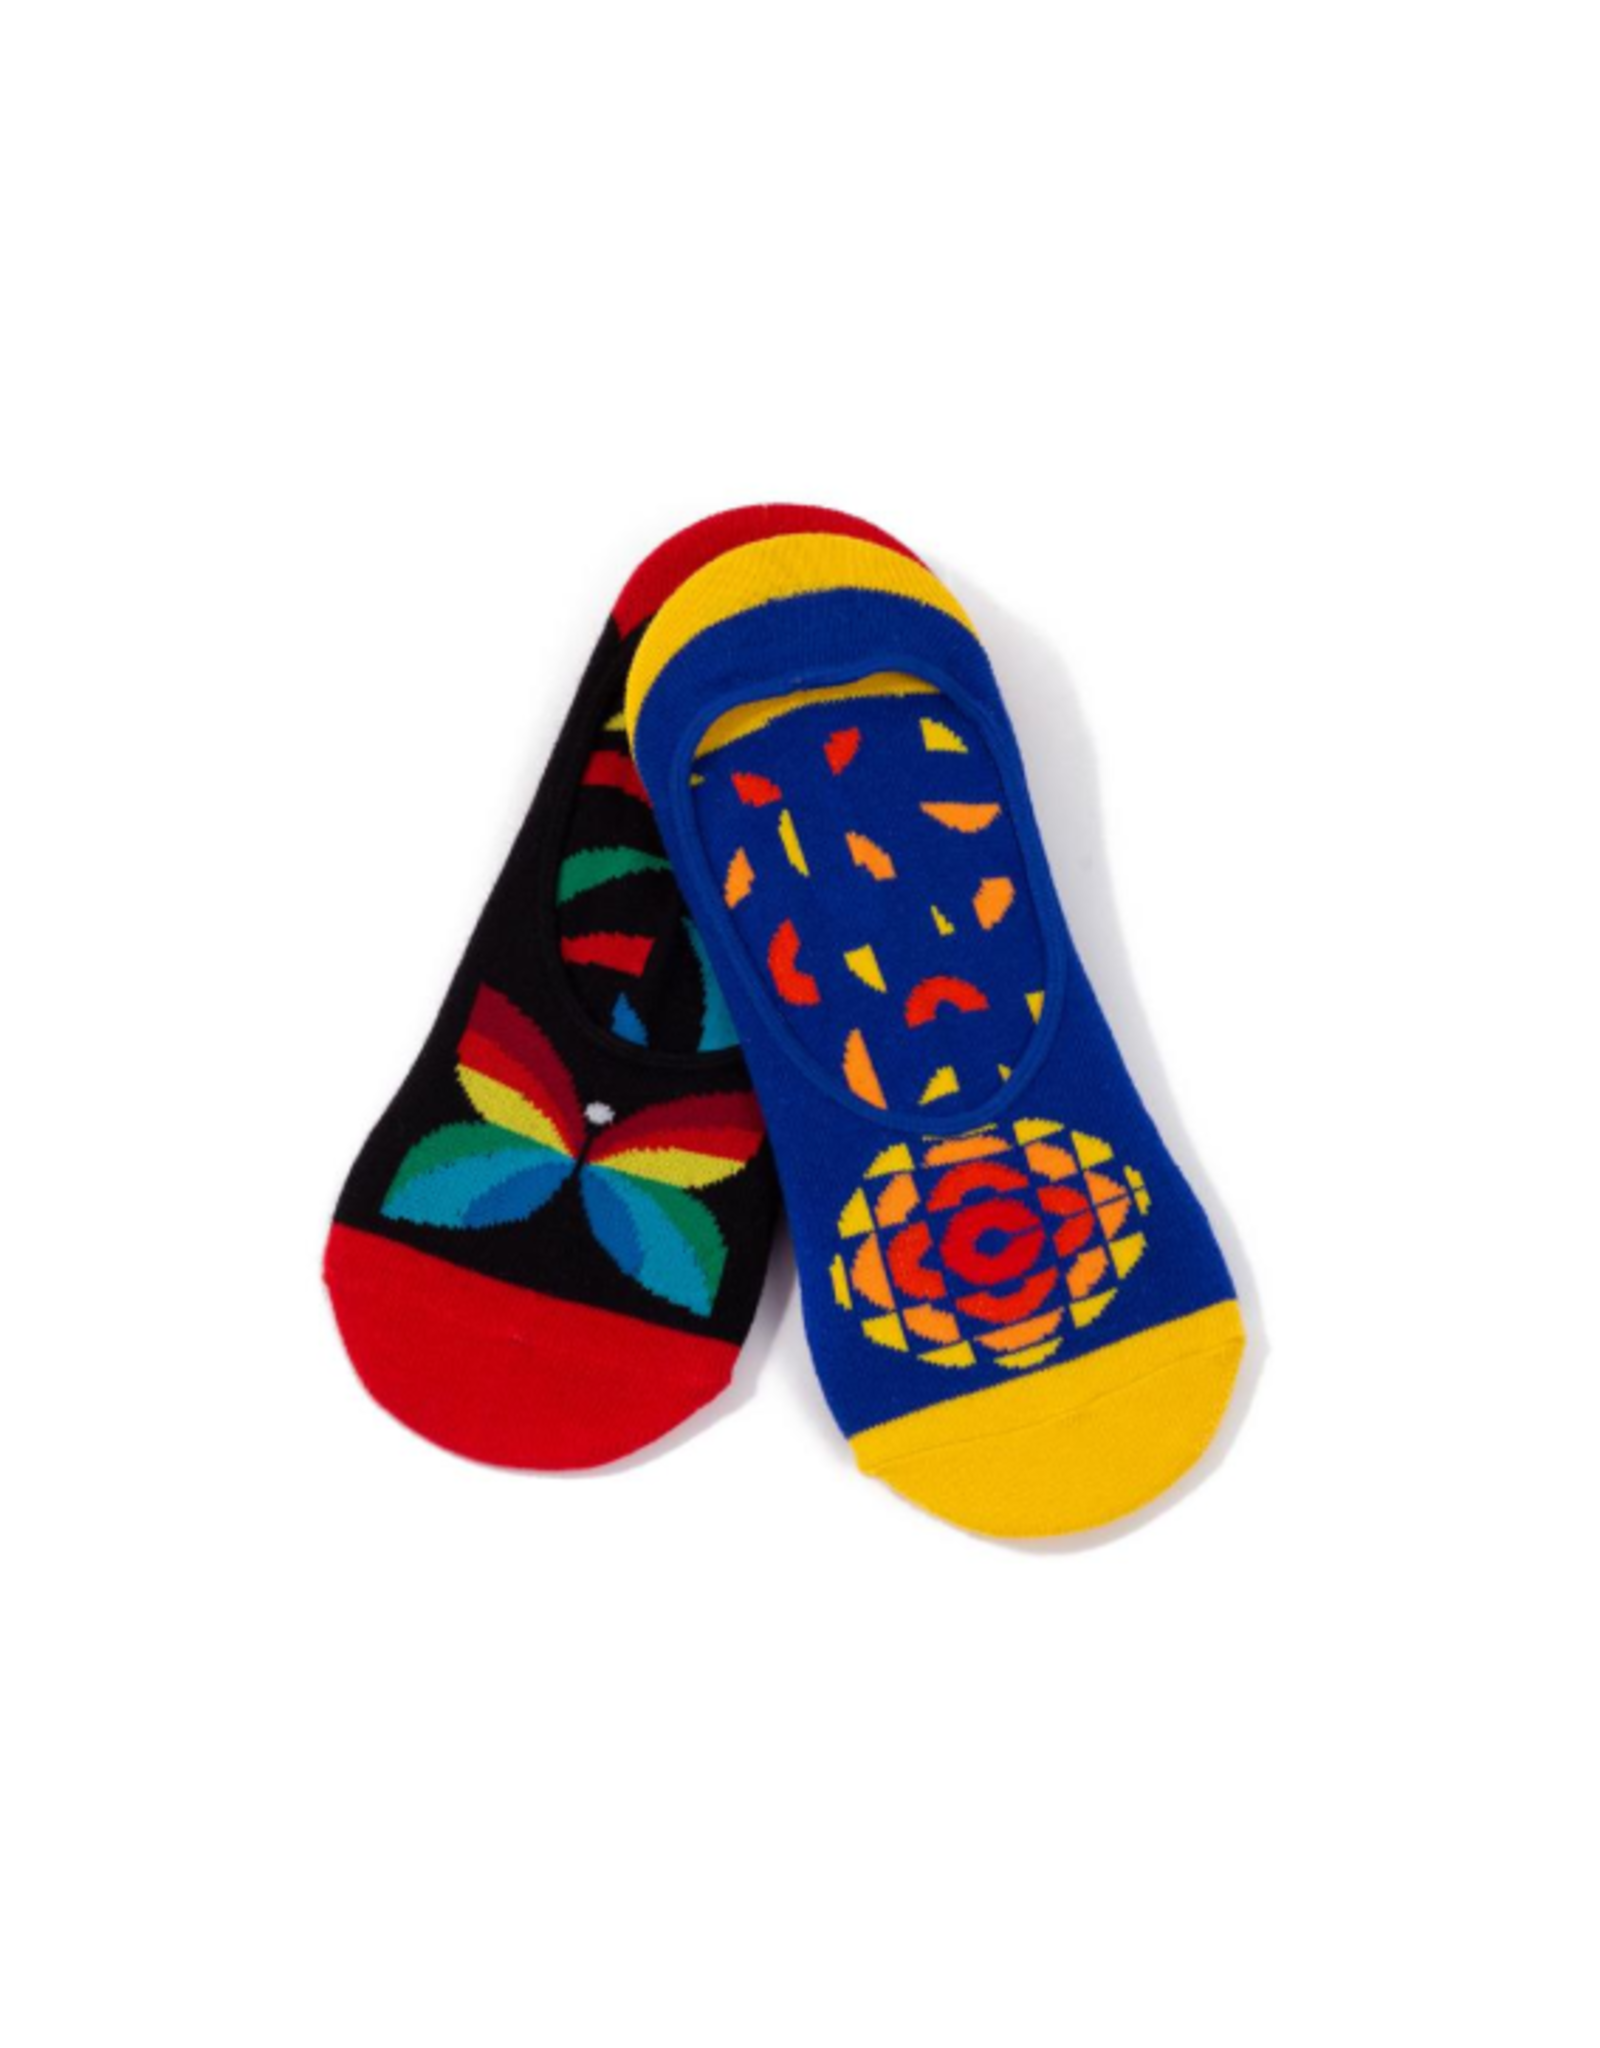 Main & Local CBC Retro Logo Socks - ankle socks